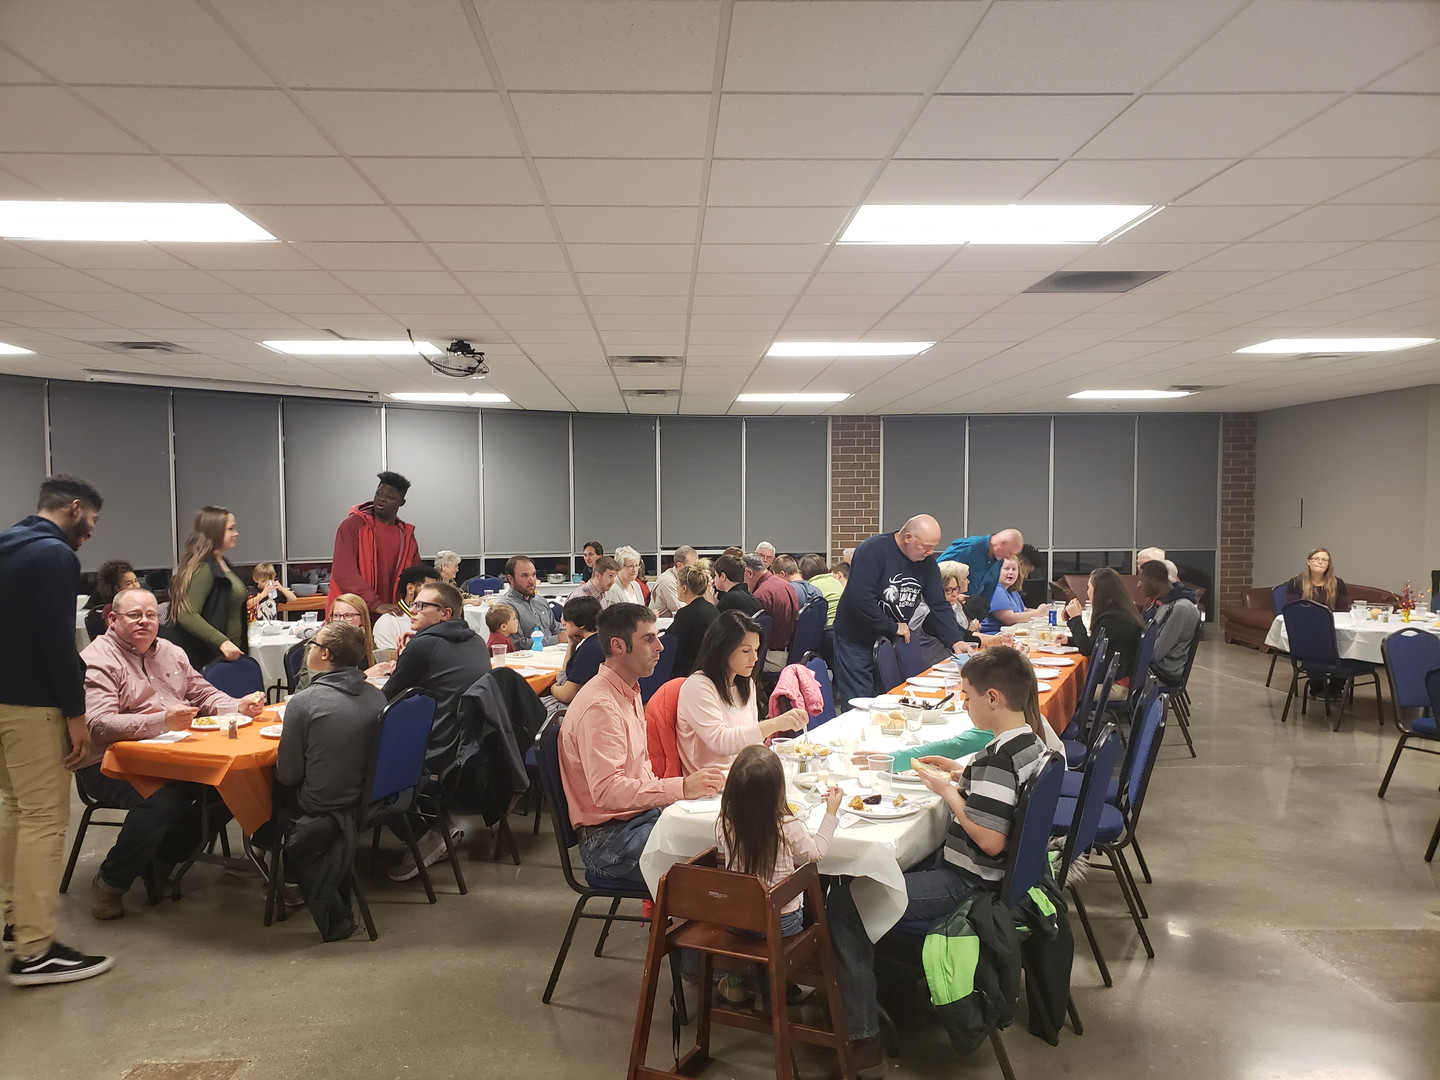 Thanksgiving meal with donors - Act.jpg